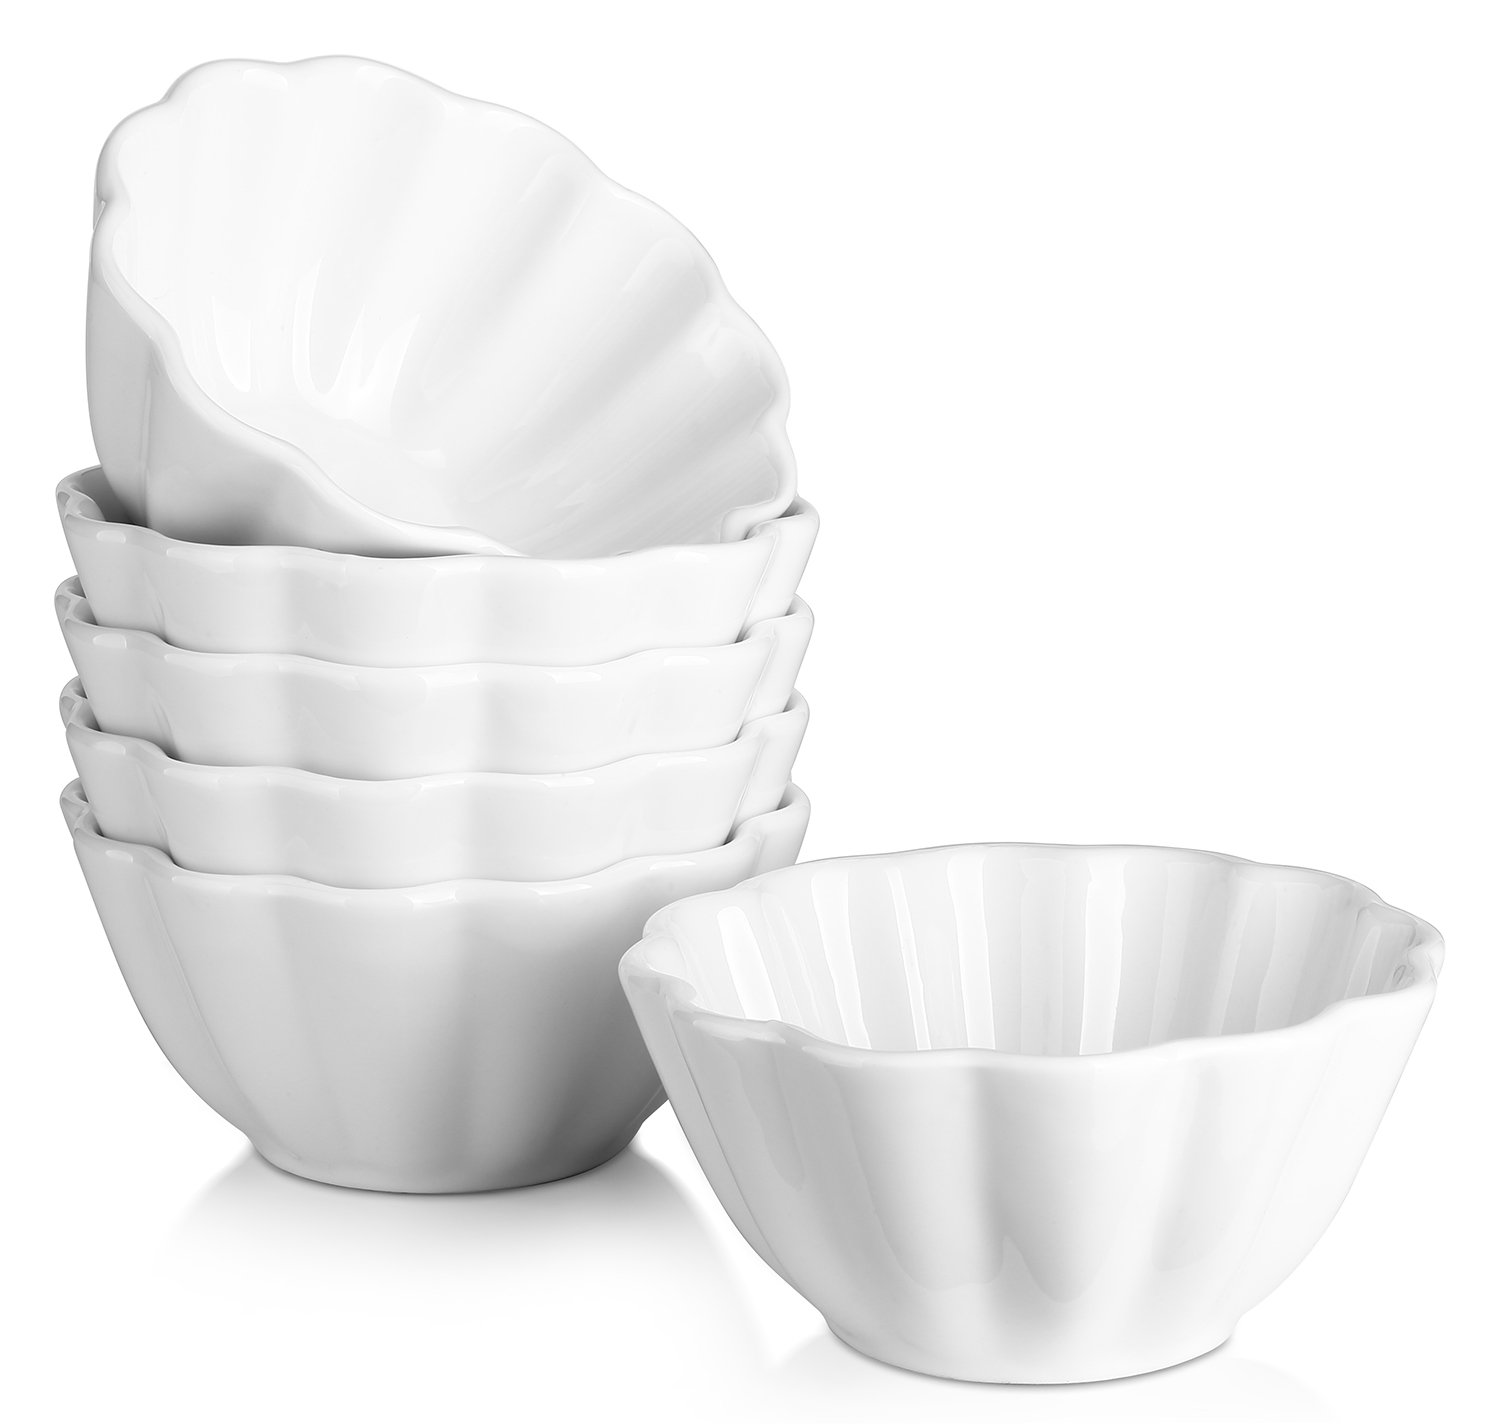 Dowan 4-oz Porcelain Ramekins for baking/Serving Bowls for Souffle, Creme Brulee and Dipping Sauces, White, Set of 6